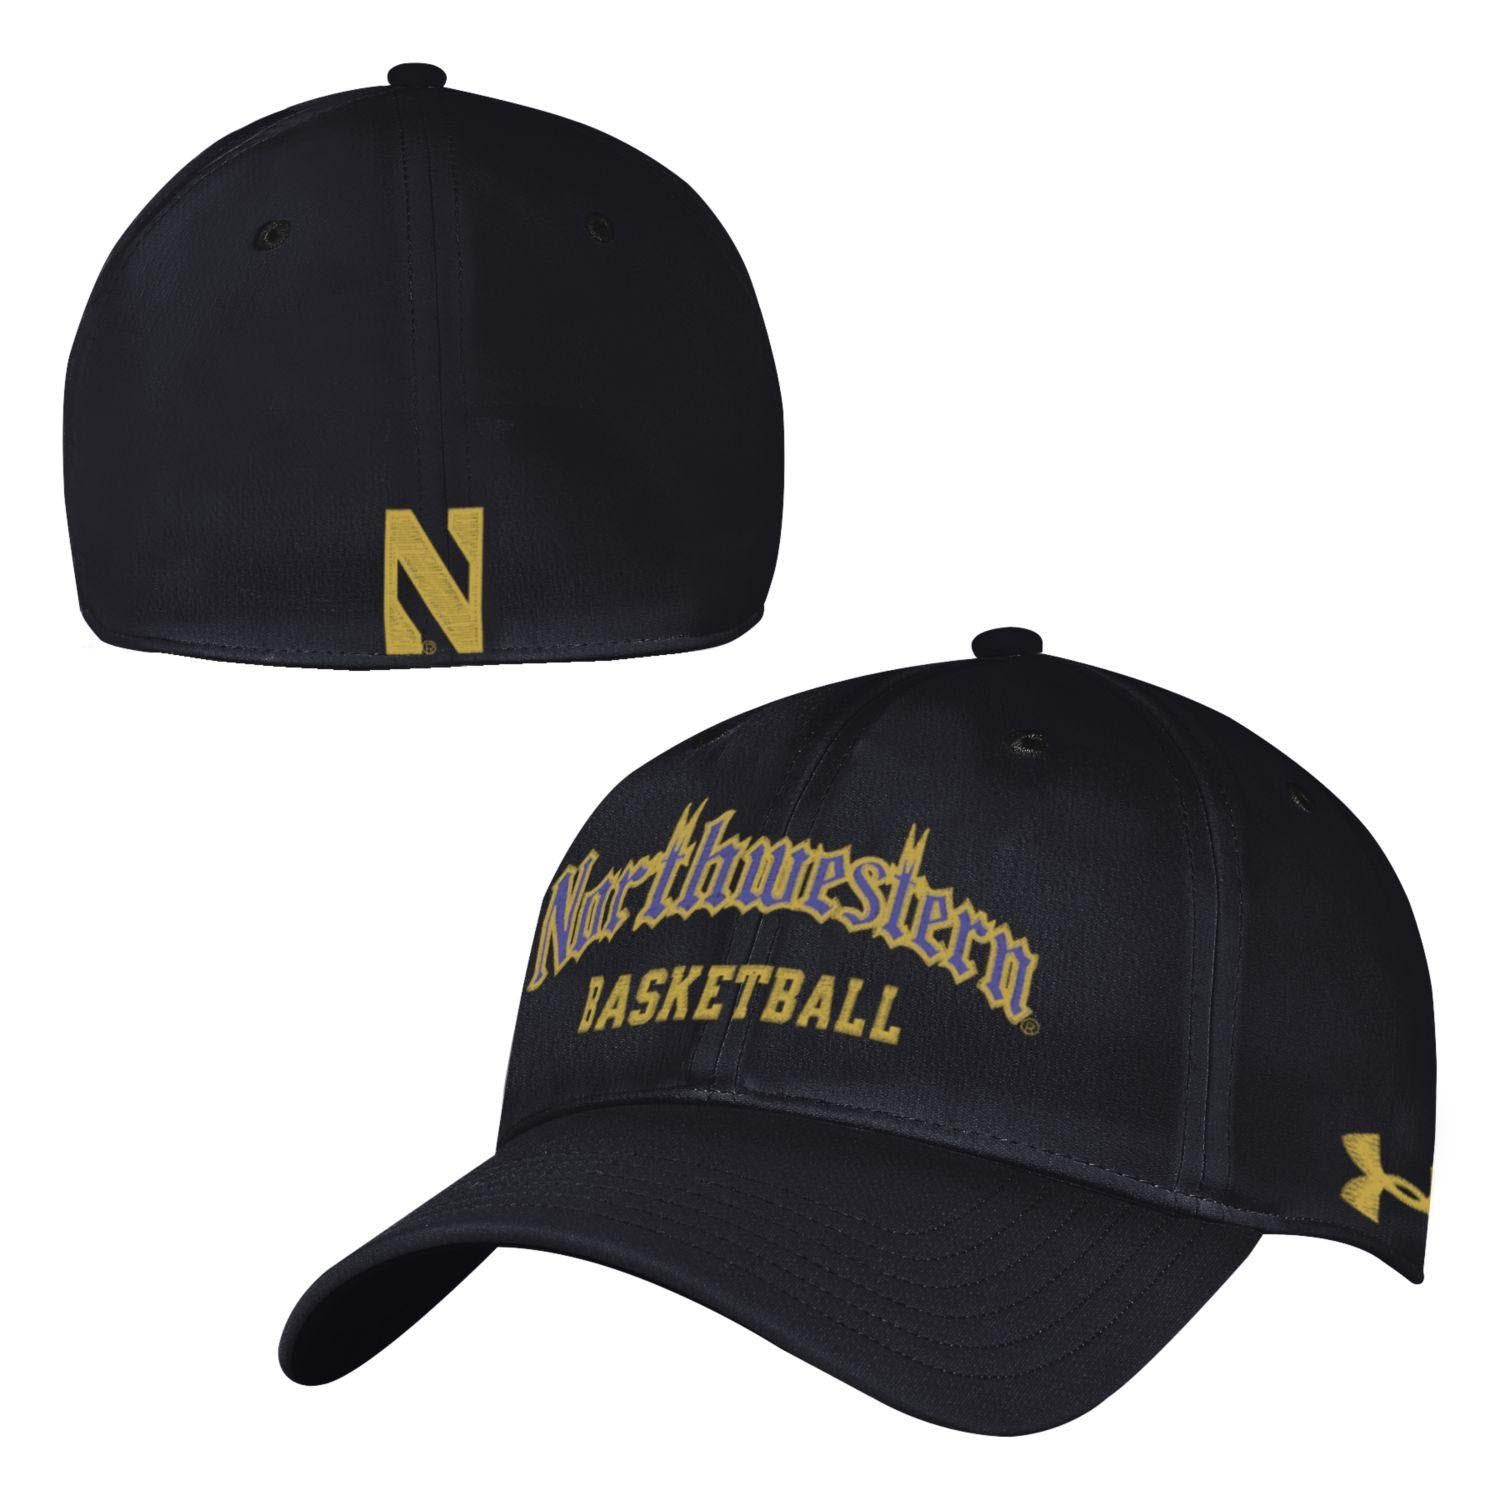 b724ce3b564 Northwestern Wildcats Under Armour® Fitted Gothic Basketball Hat ...